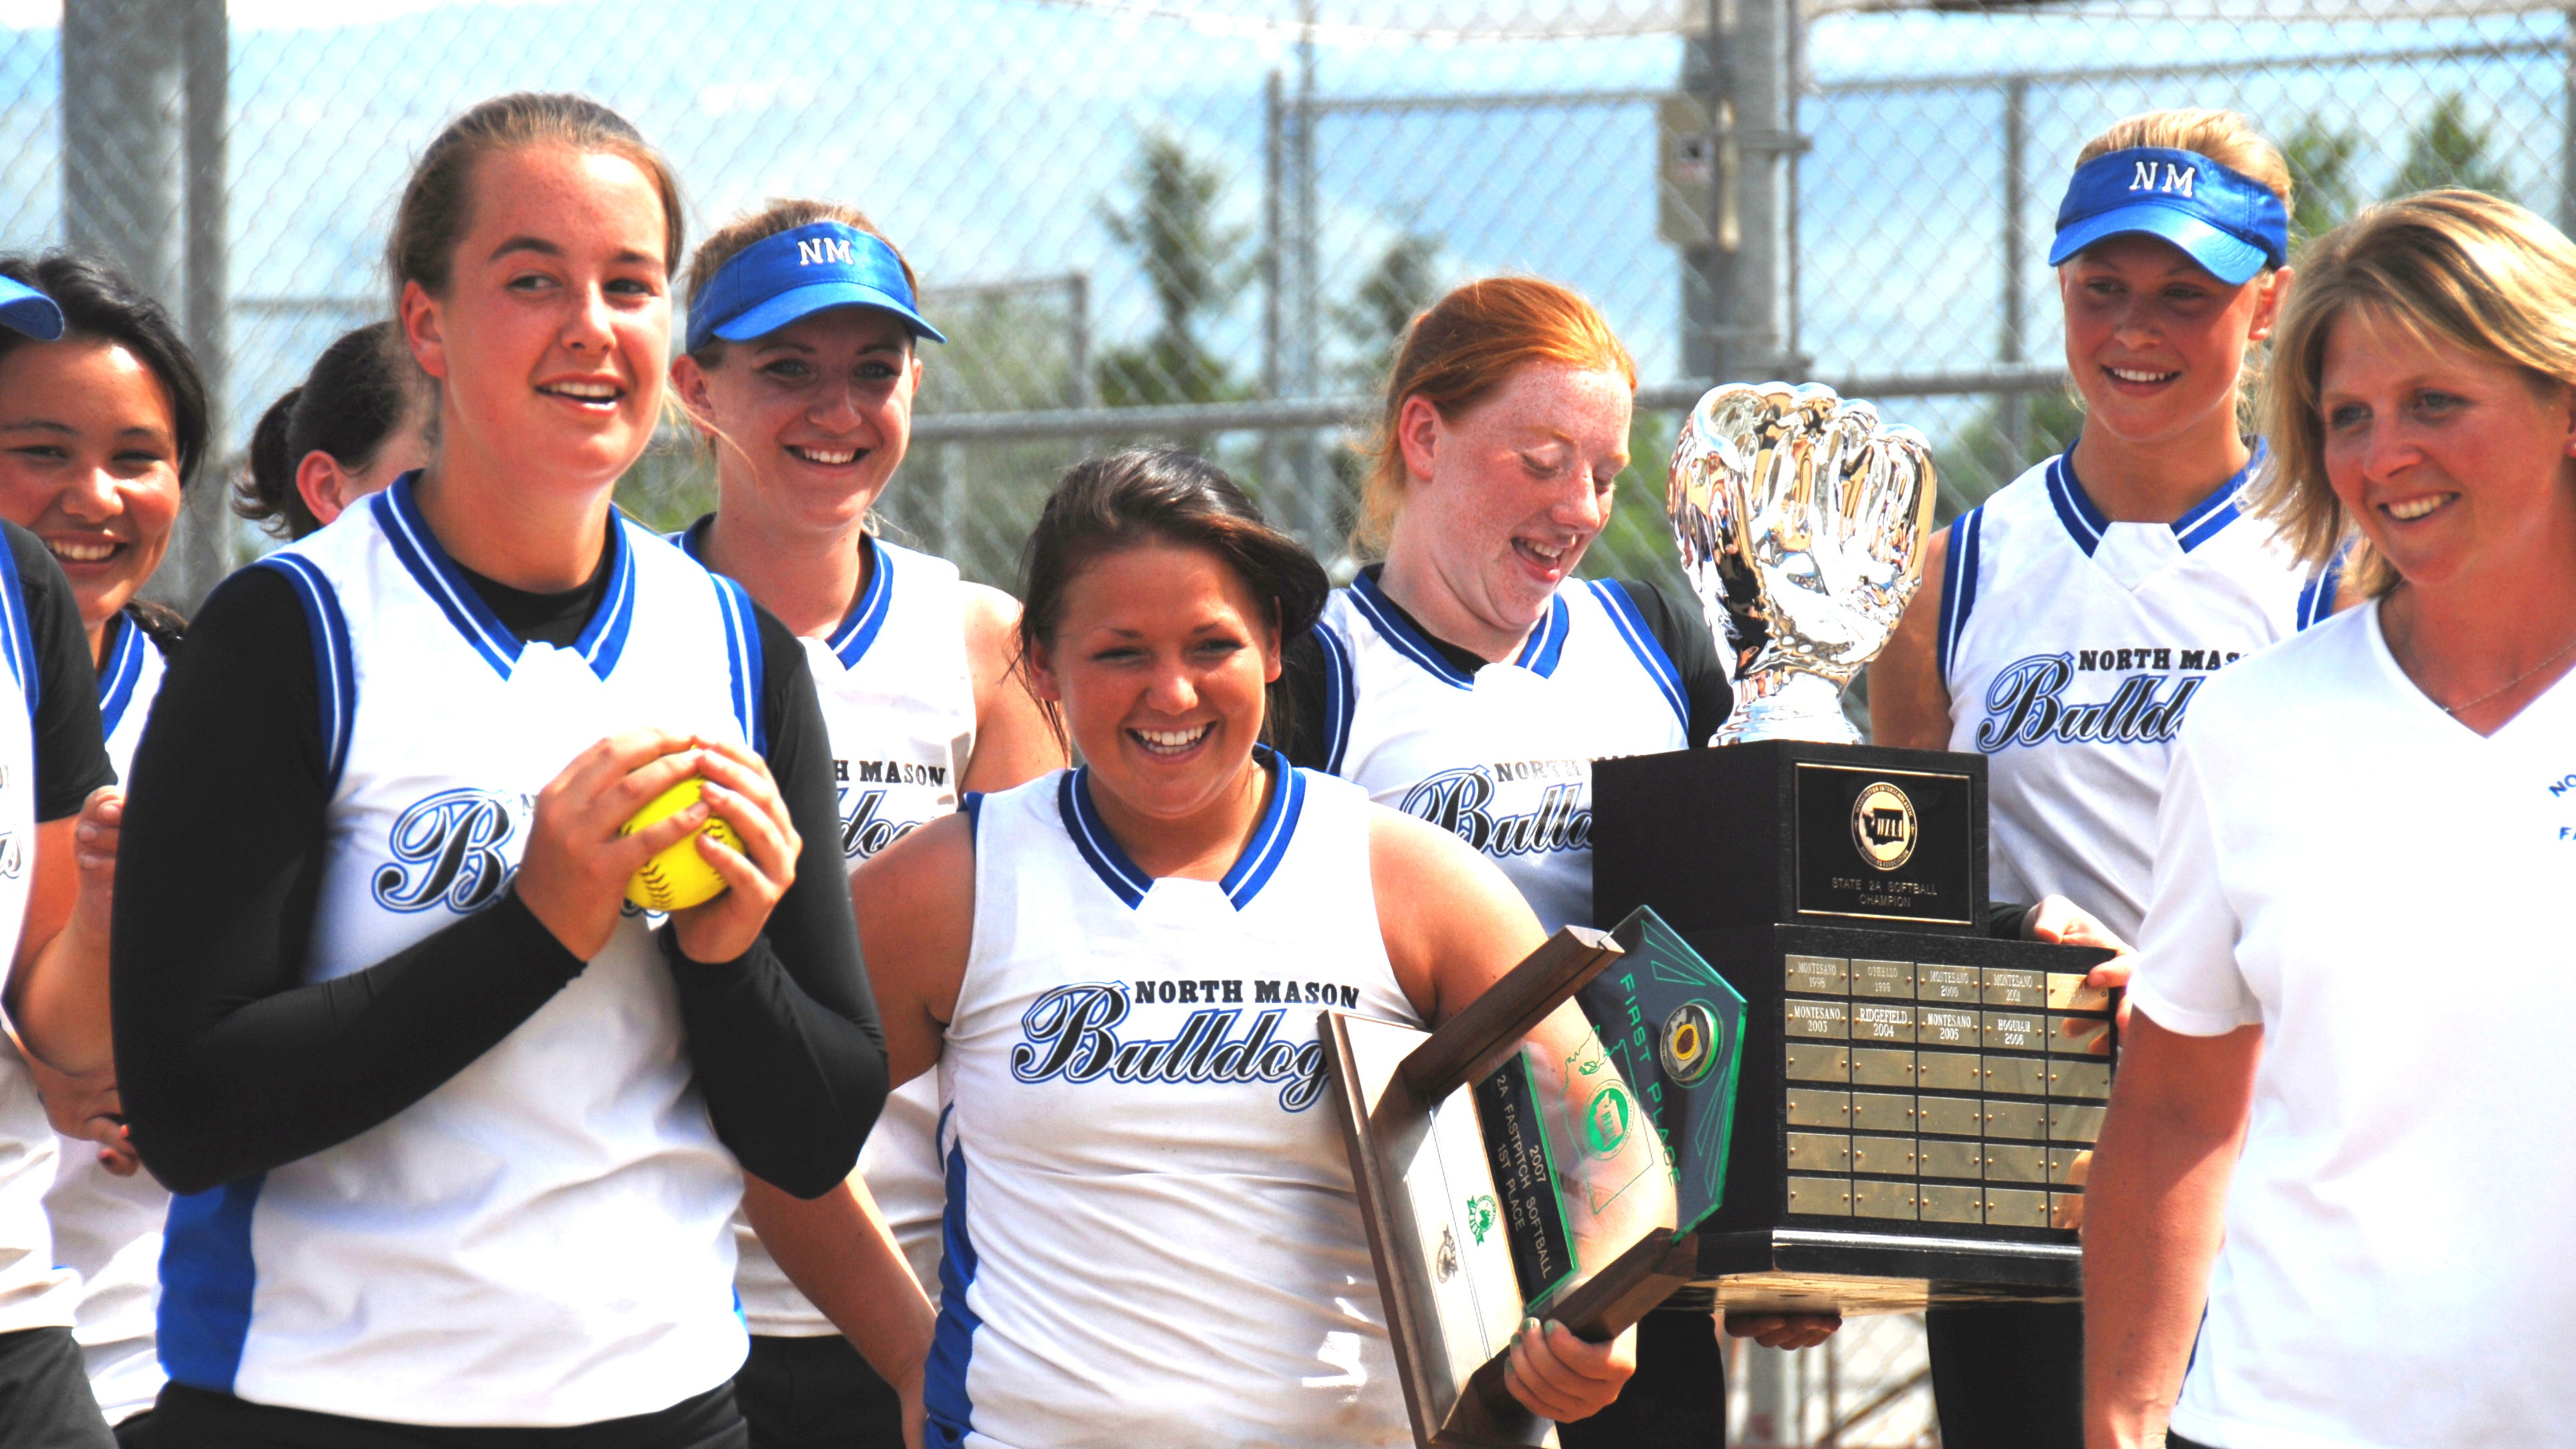 North Mason's 2007 softball state championship team included, from left, Katelyn Stanley (with ball), Kylee Hull, Anna Heitstuman, Hannah Marshall and coach Paula Grande.